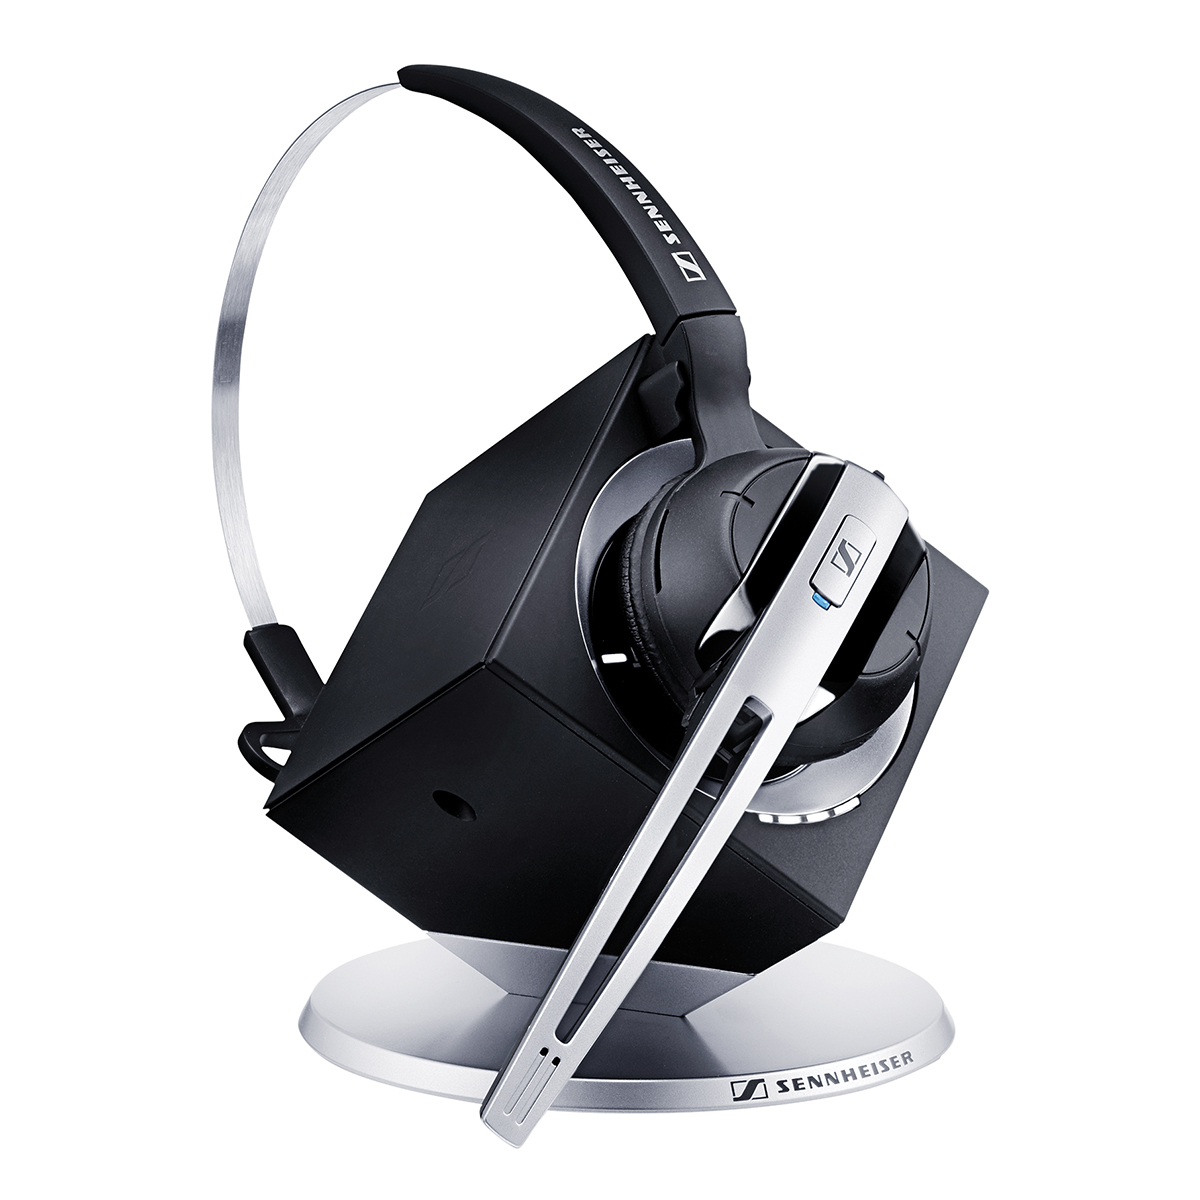 EPOS Sennheiser DW Office Phone Single Connectivity DECT Mono Headset